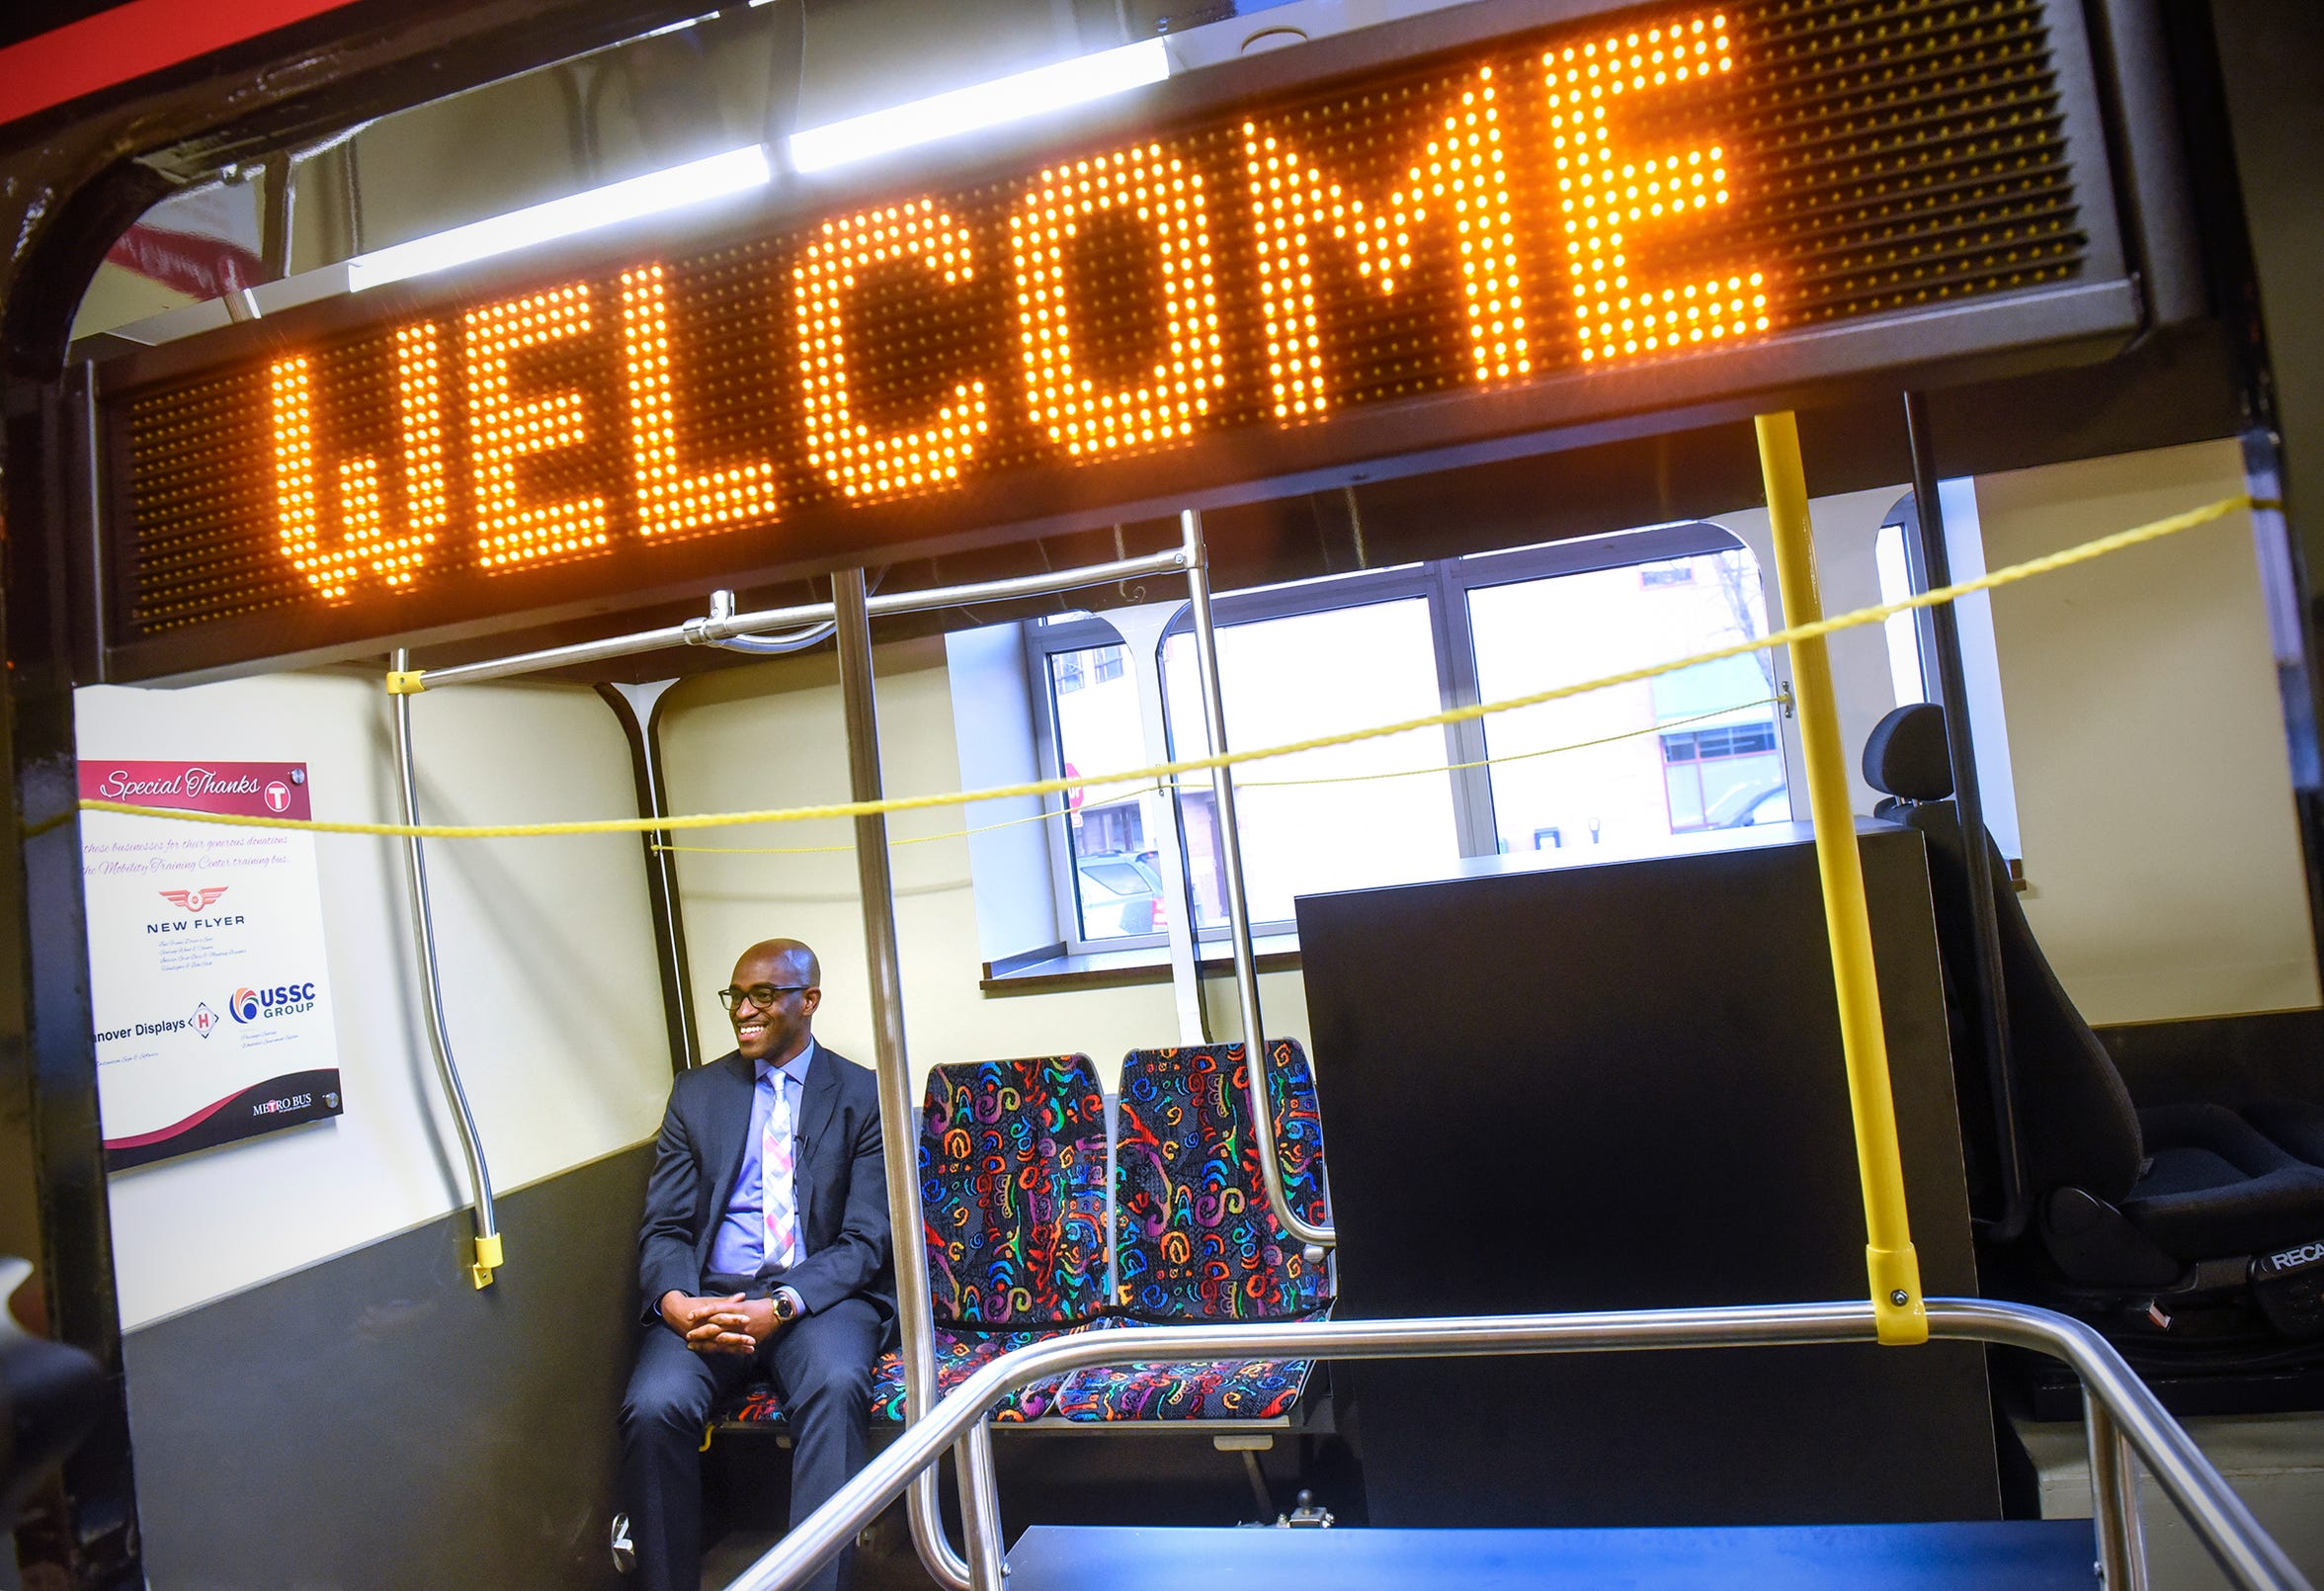 Metro Bus CEO Ryan Daniel smiles while talking about his work during an interview Friday, Dec. 7, at  the Metro Bus Mobility Training Center in St. Cloud.